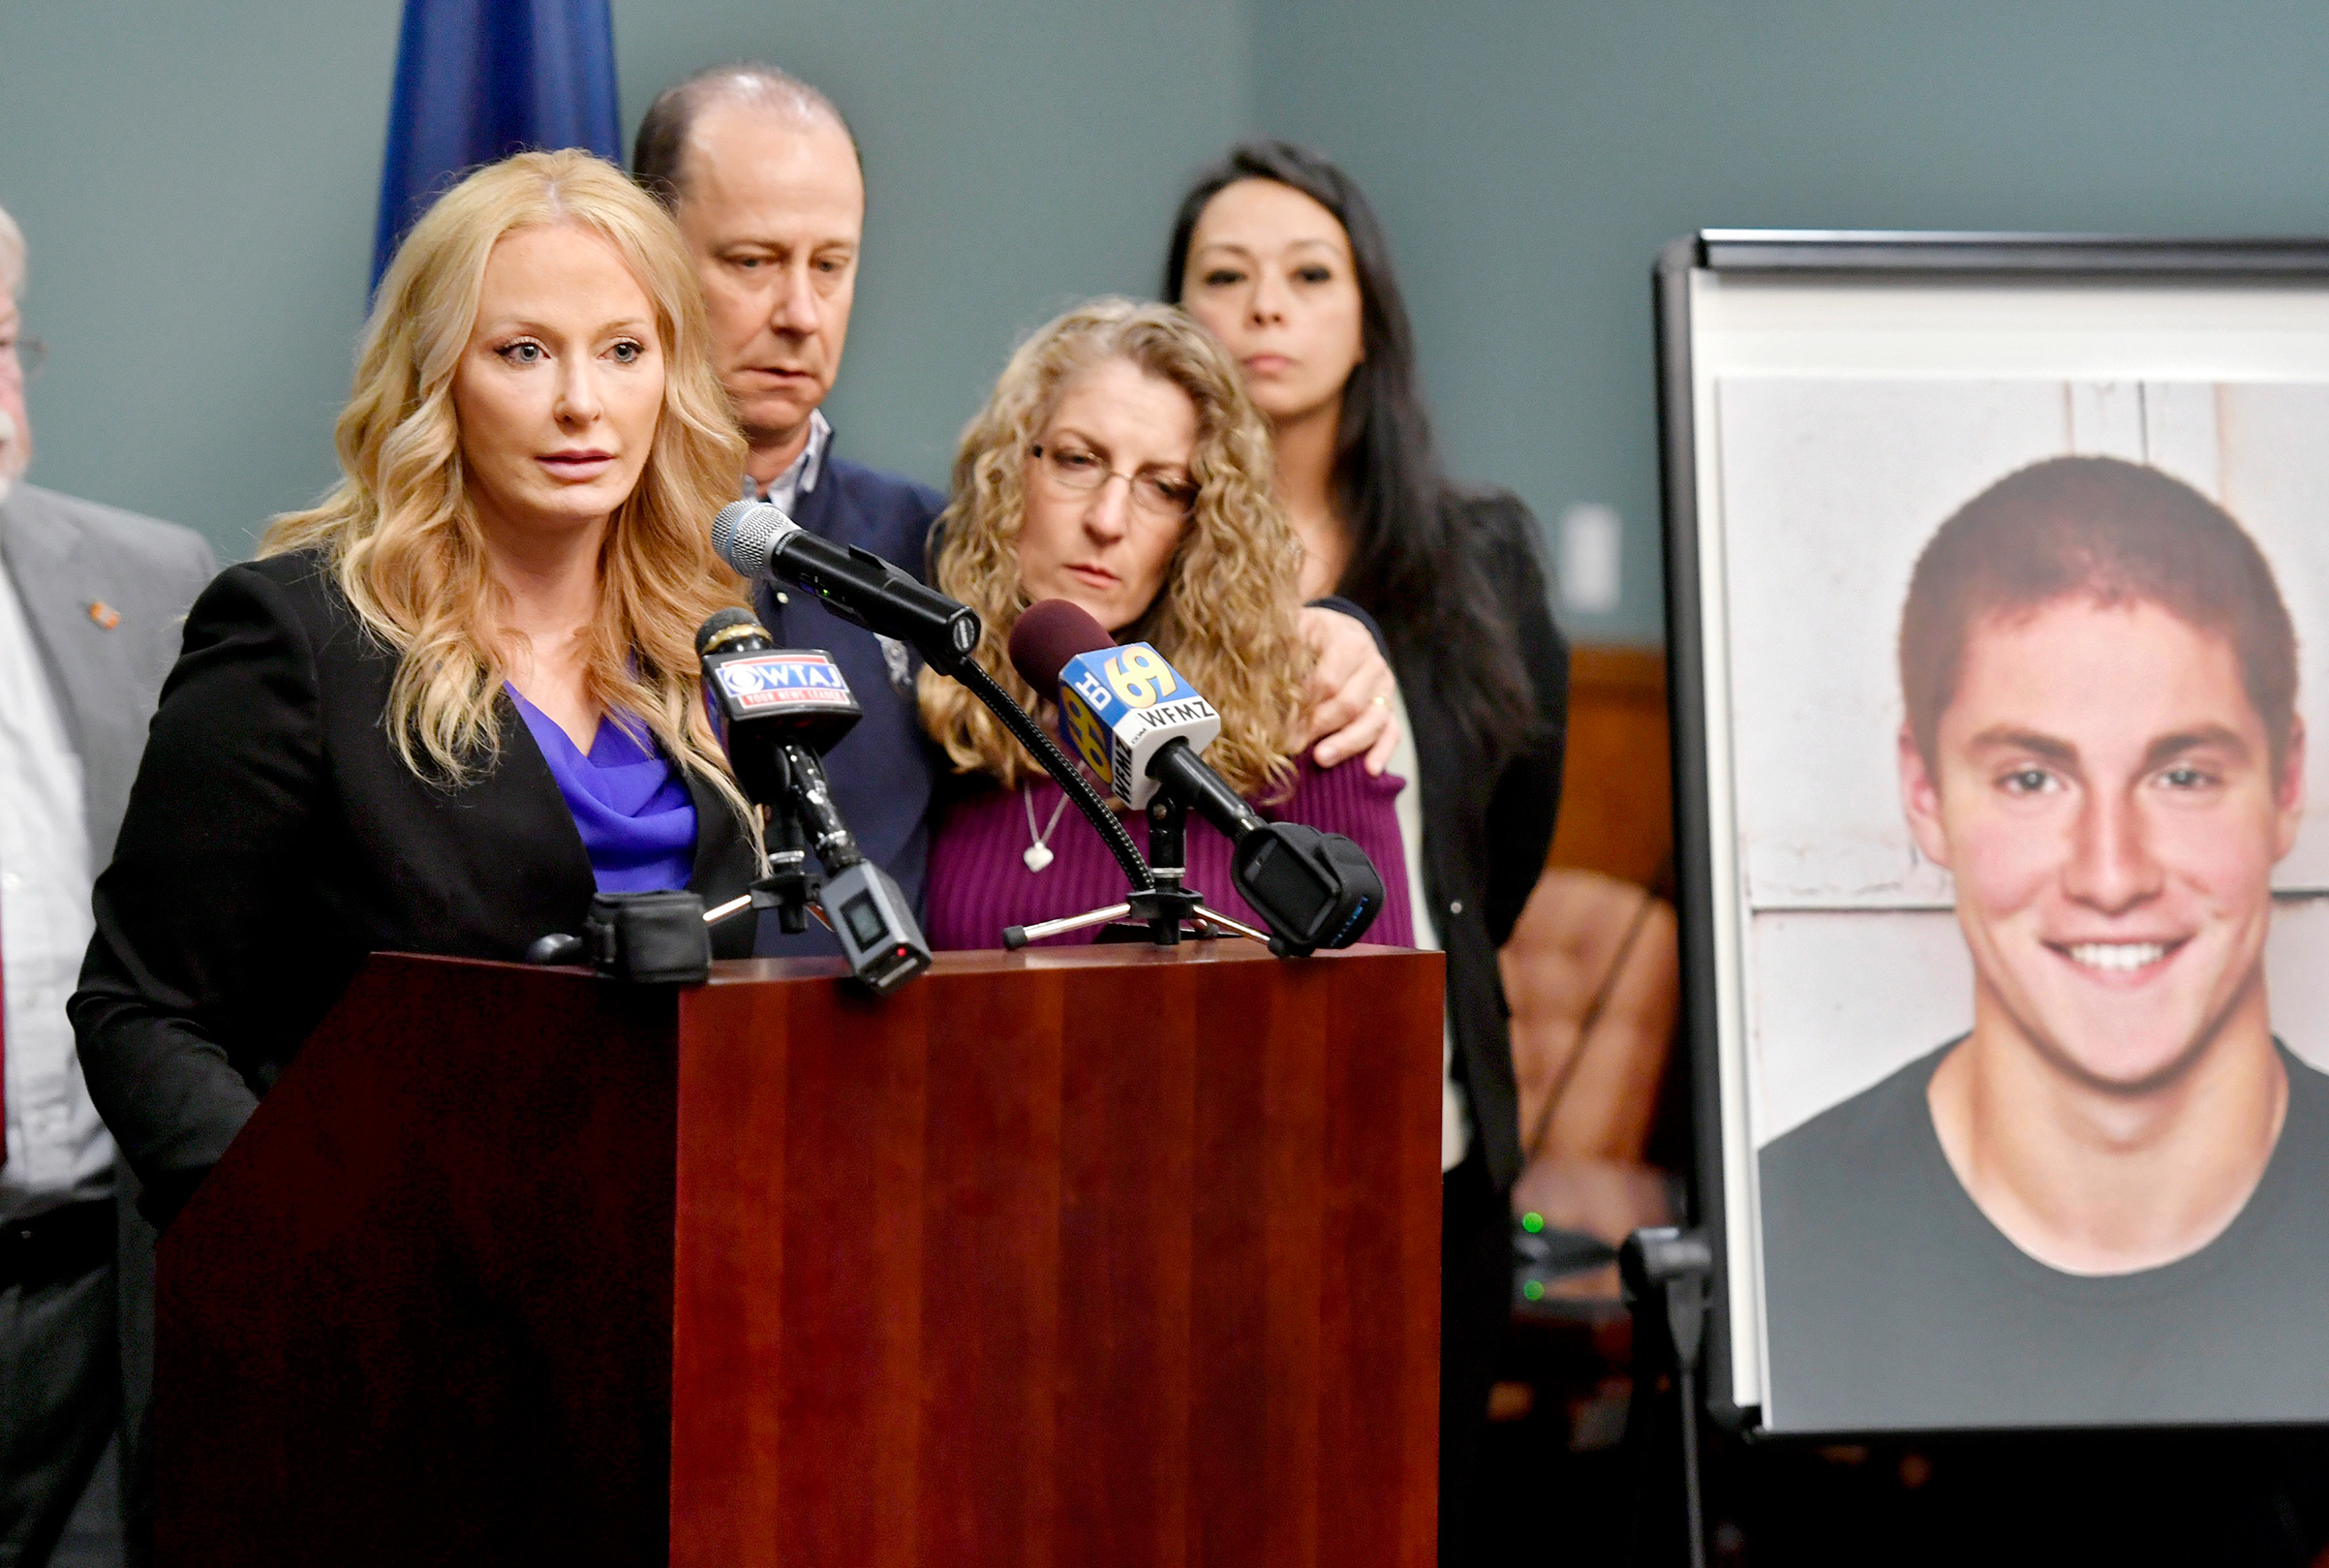 Centre County District Attorney Stacy Parks Miller, left, stands with Tim Piazza's parents on May 5 to announce the results of an investigation into his death